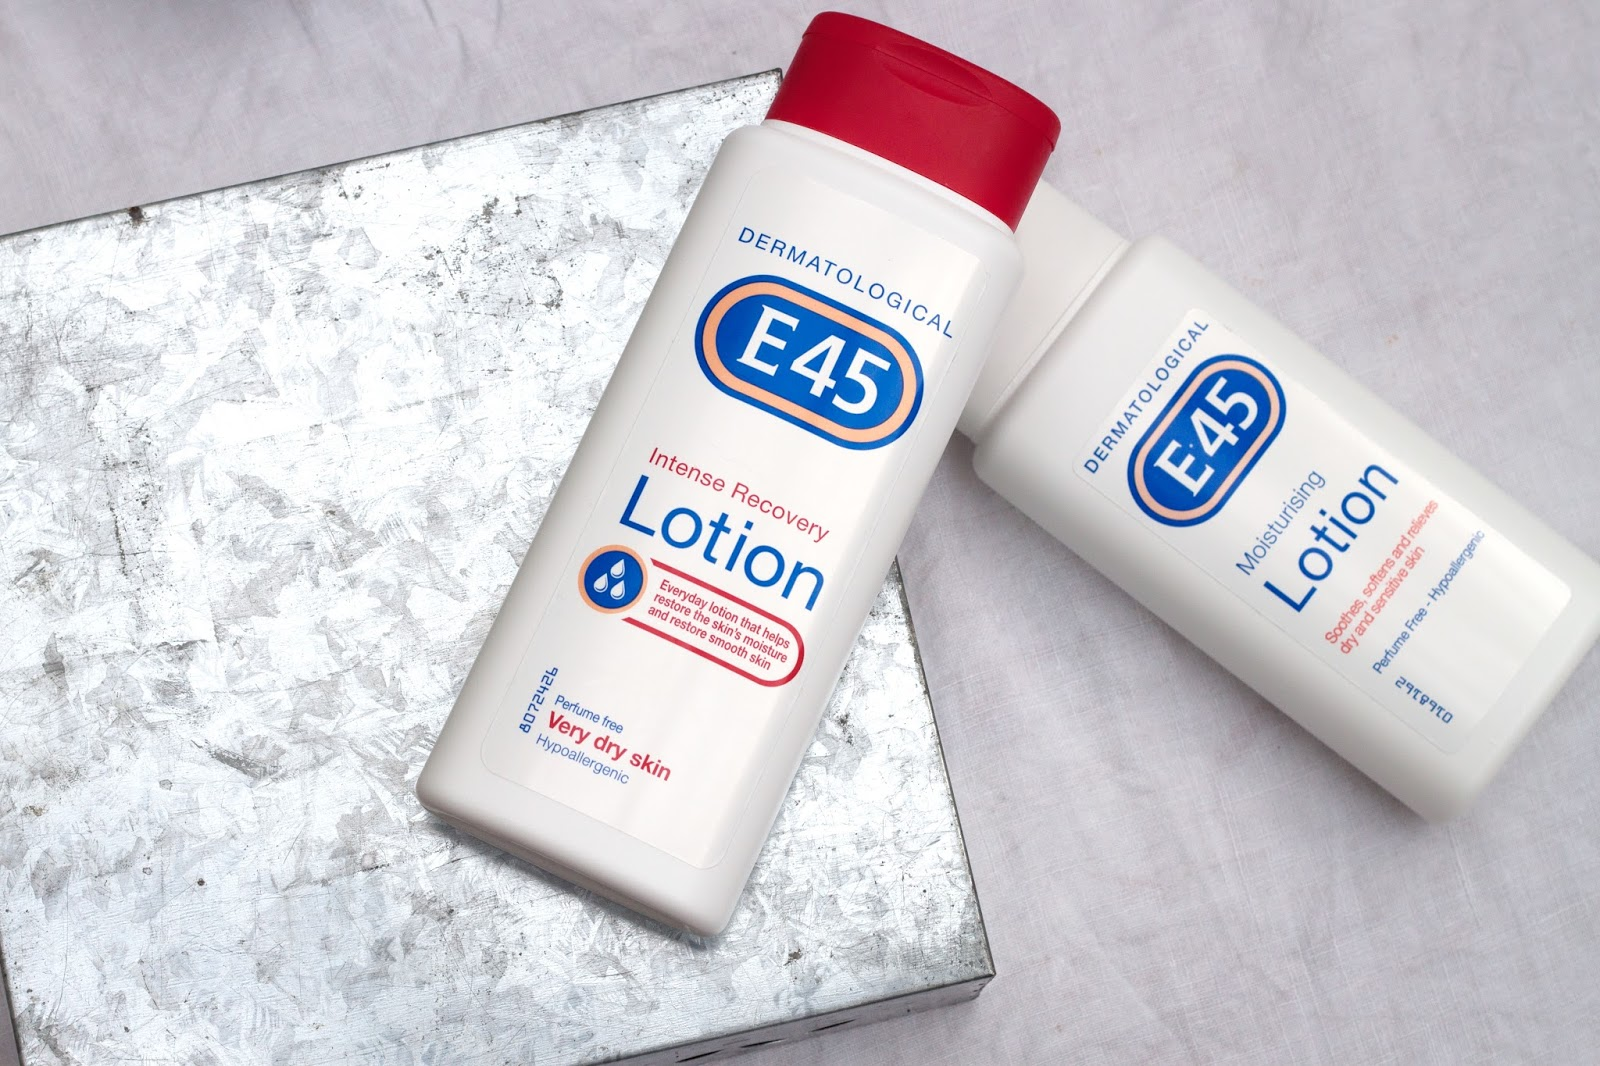 BEAUTY : E45 LOTION REVIEW